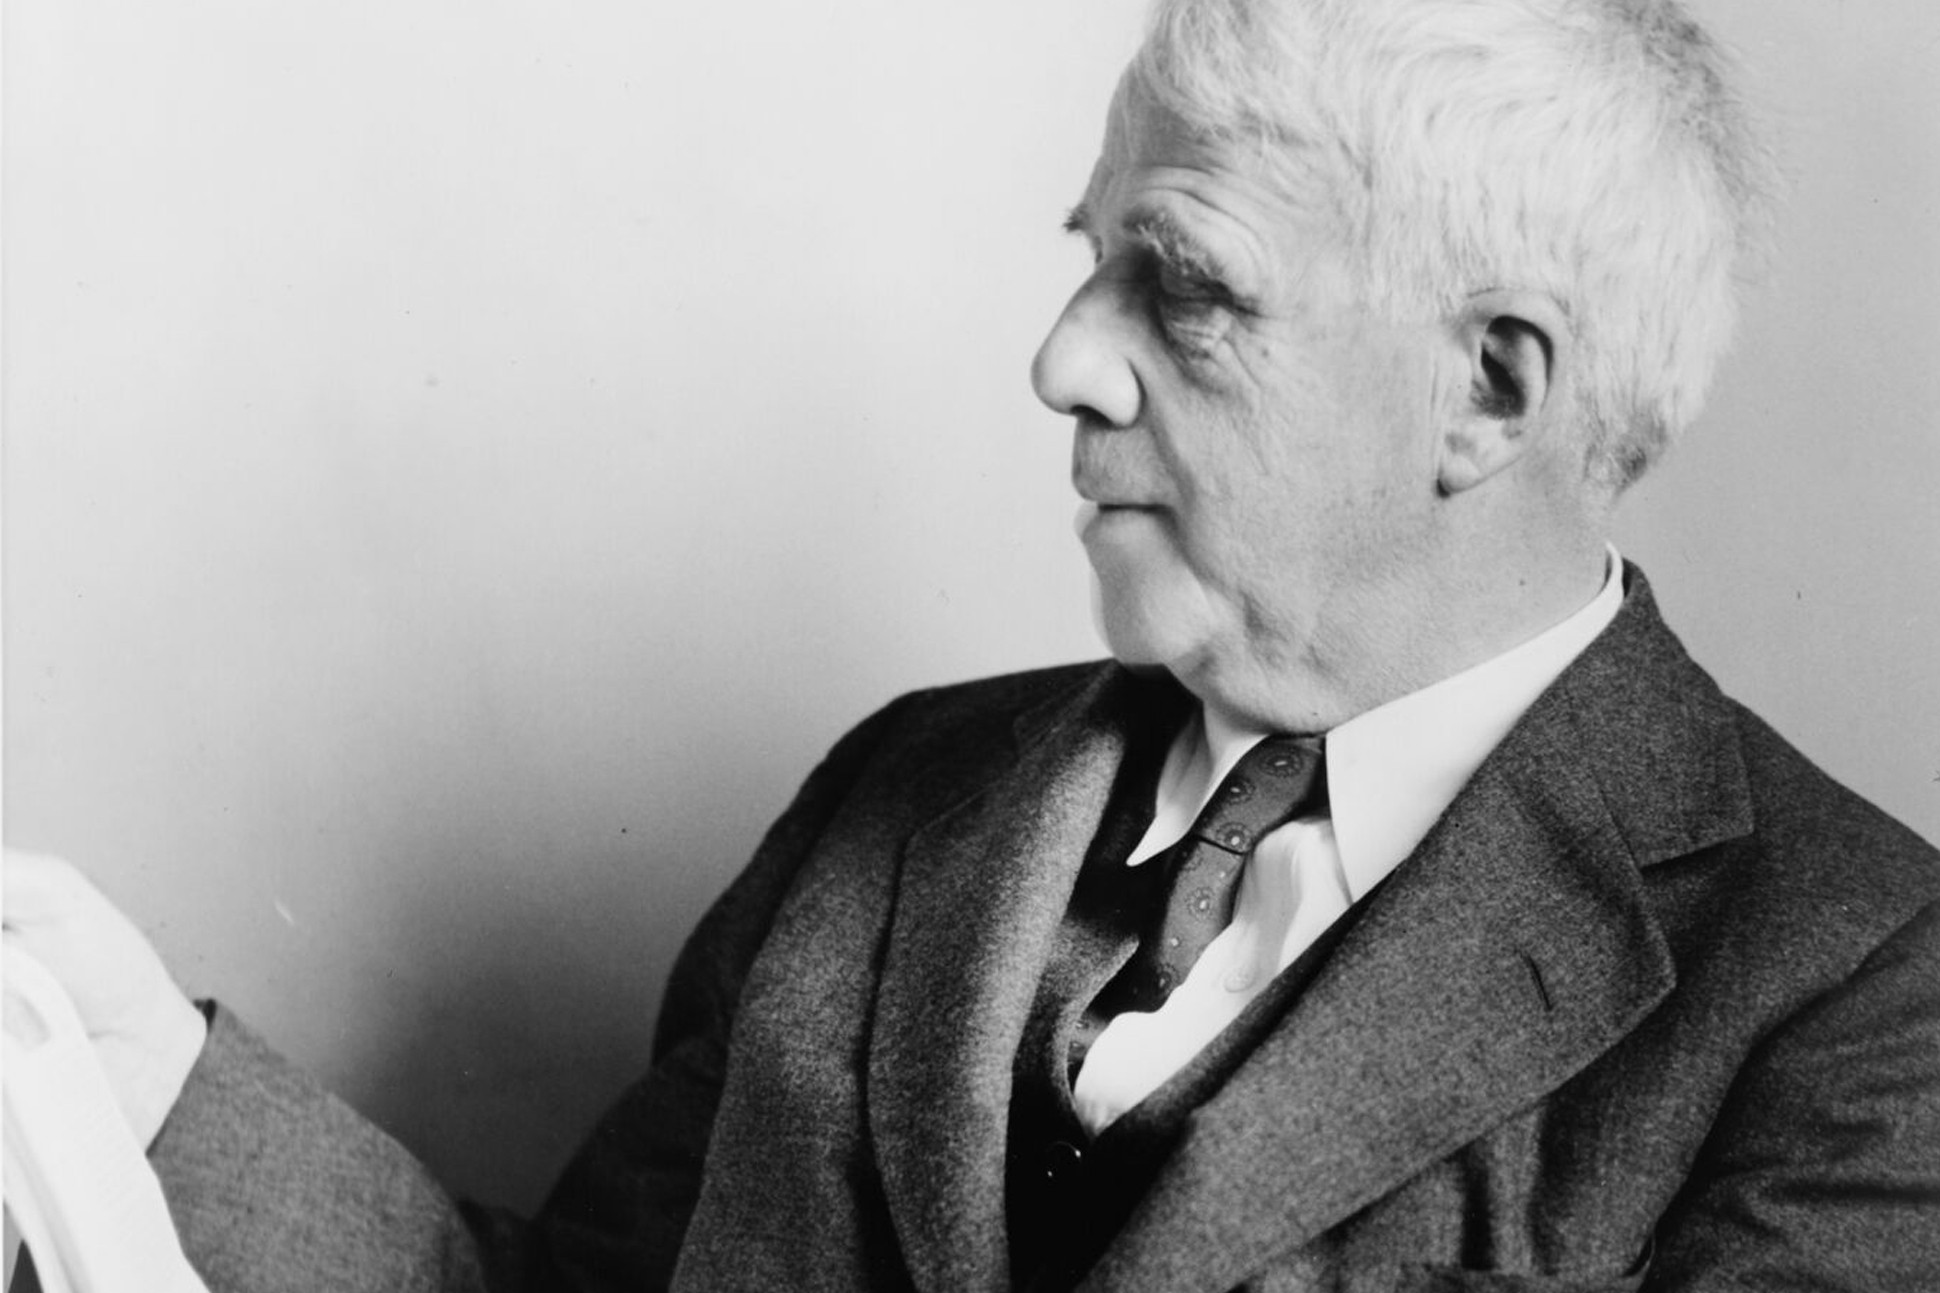 Image of Robert Frost.